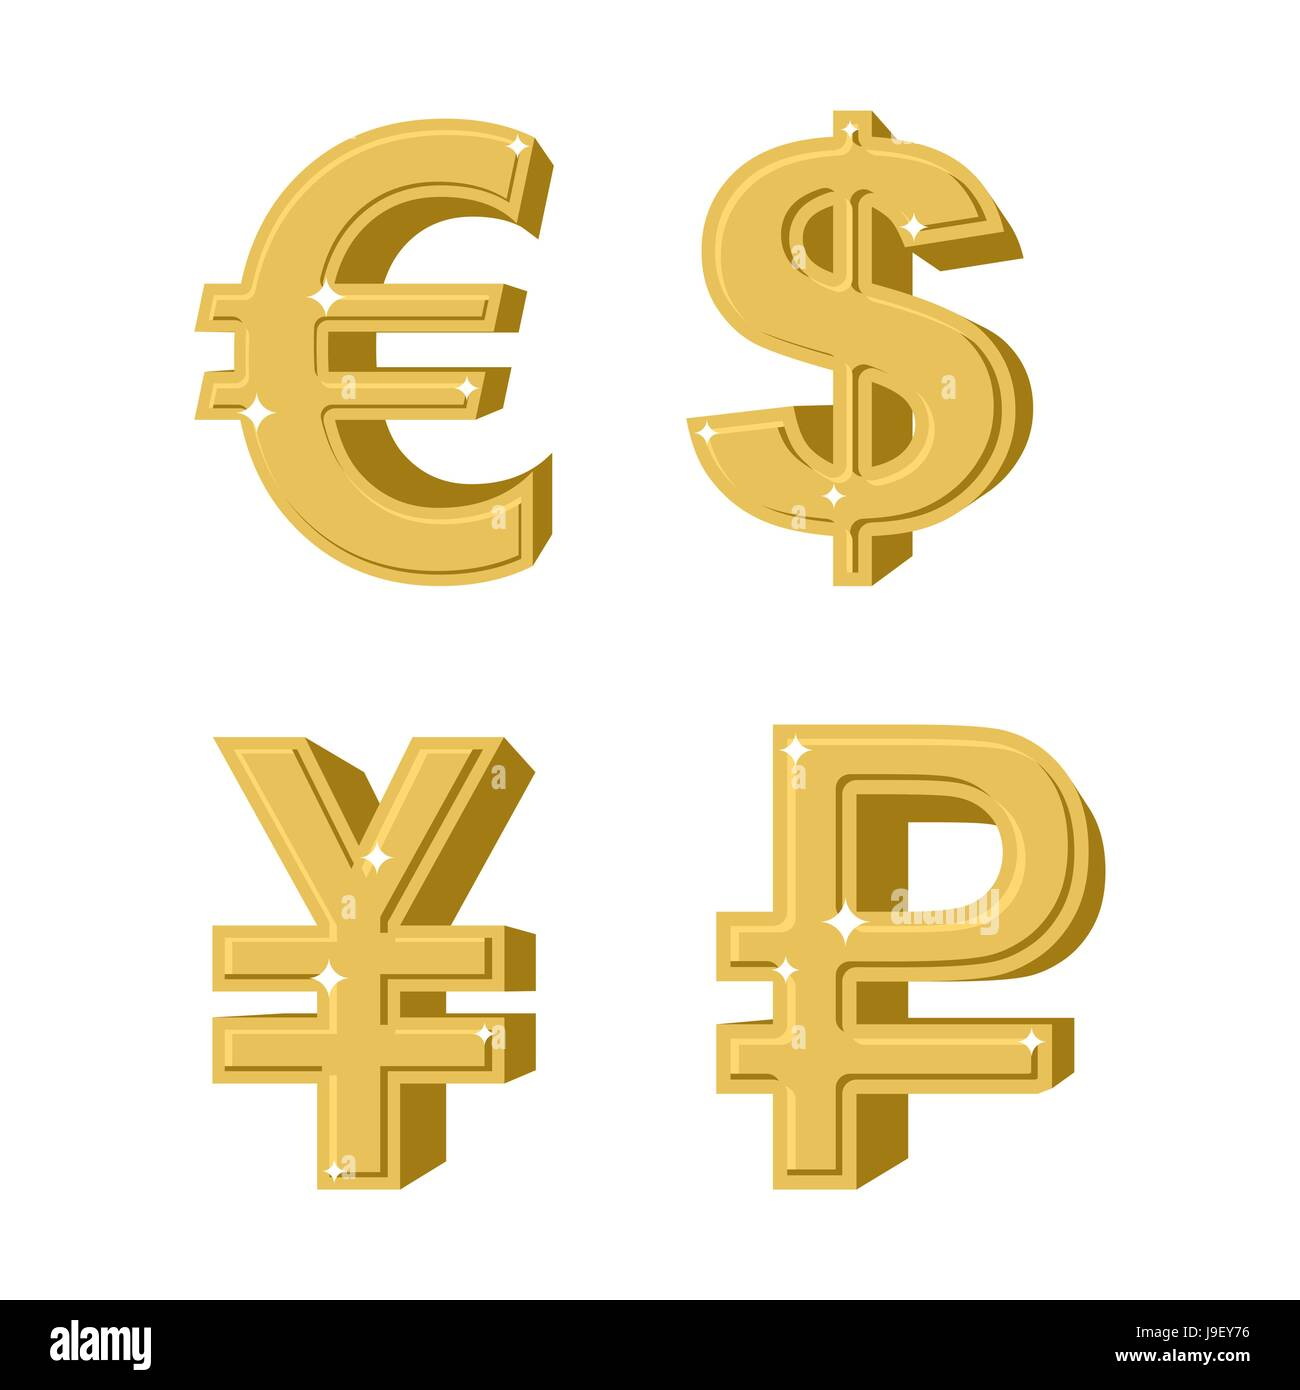 set of golden symbols money russian ruble euro european cash chinese currency is yen symbol of american dollar precious yellow metal